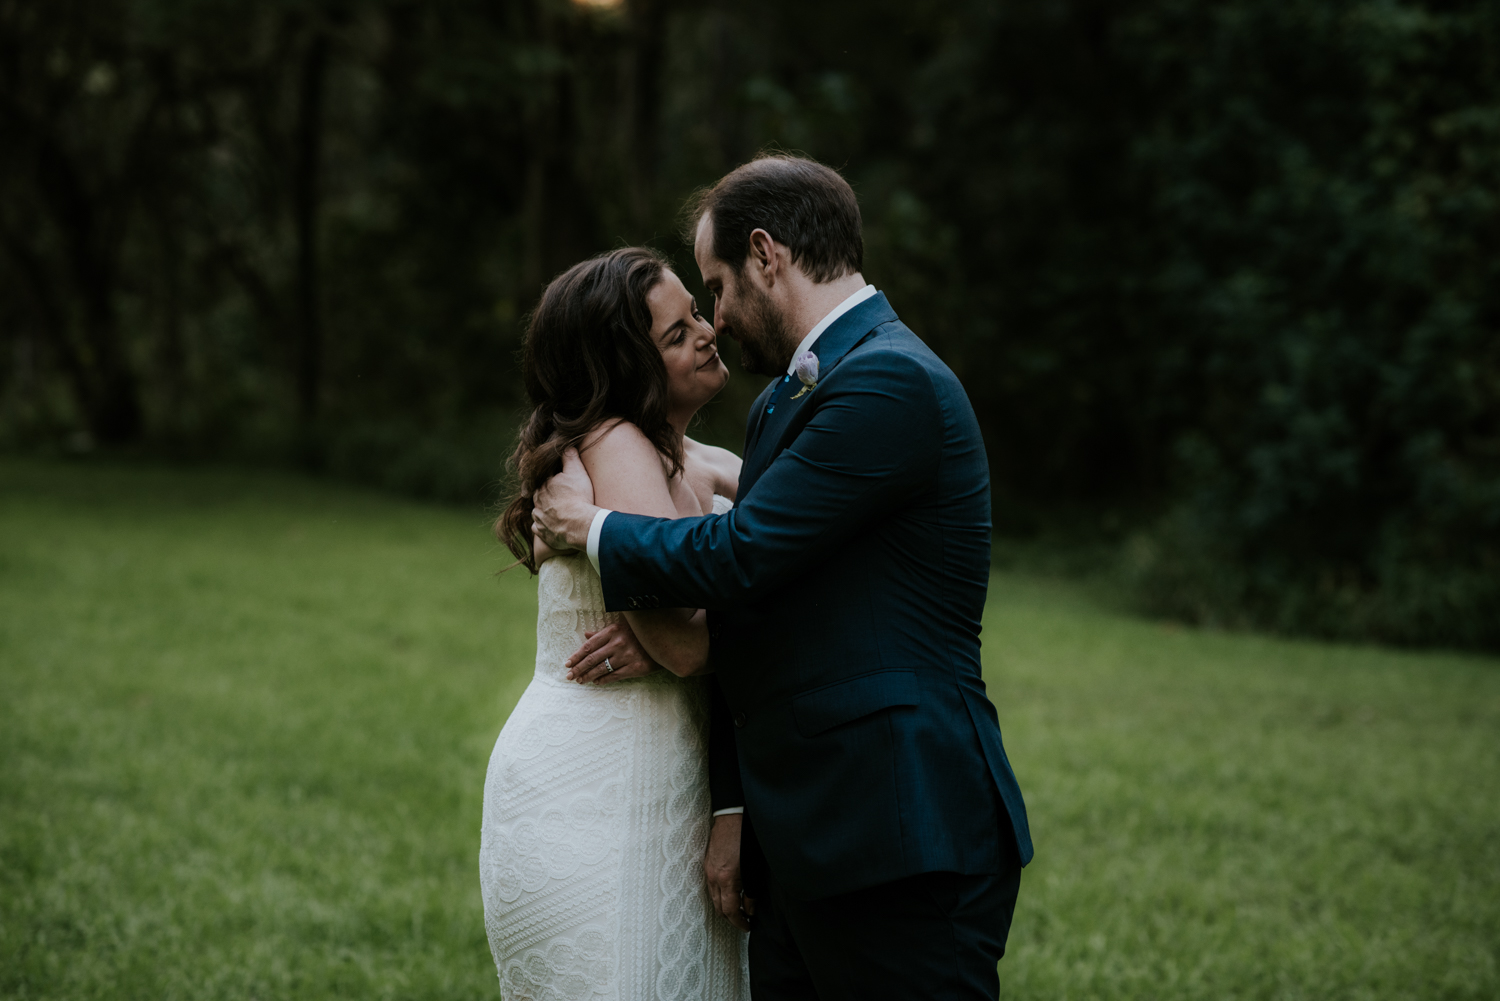 Brisbane Wedding Photographer | Bundaleer Rainforest Gardens-49.jpg